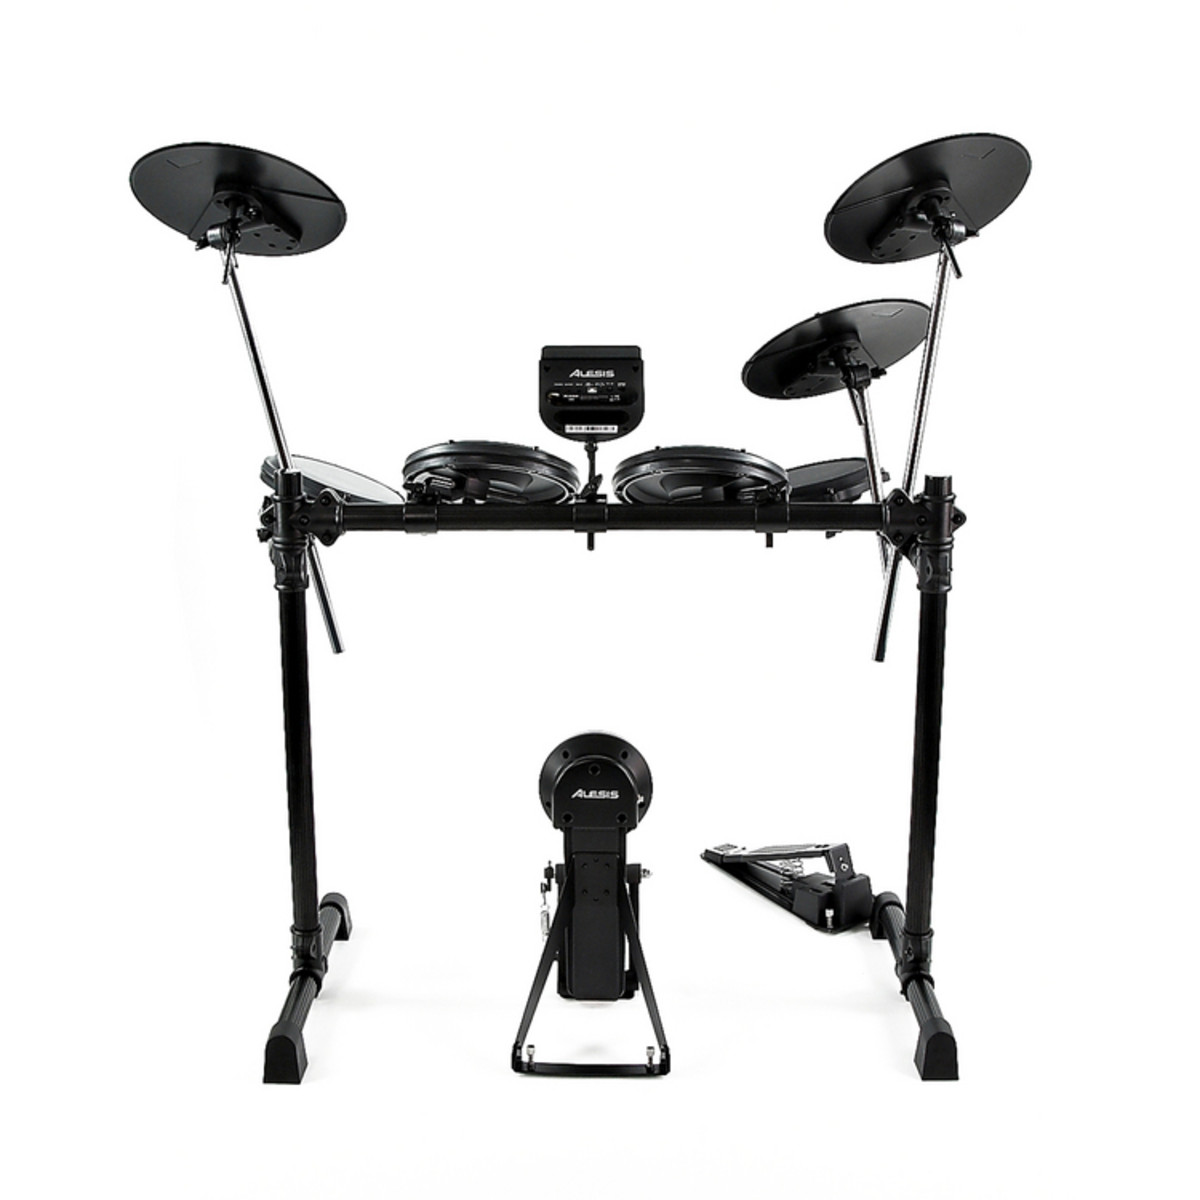 DISC Alesis DM6 USB Electronic Drum Kit + Amp Package Deal